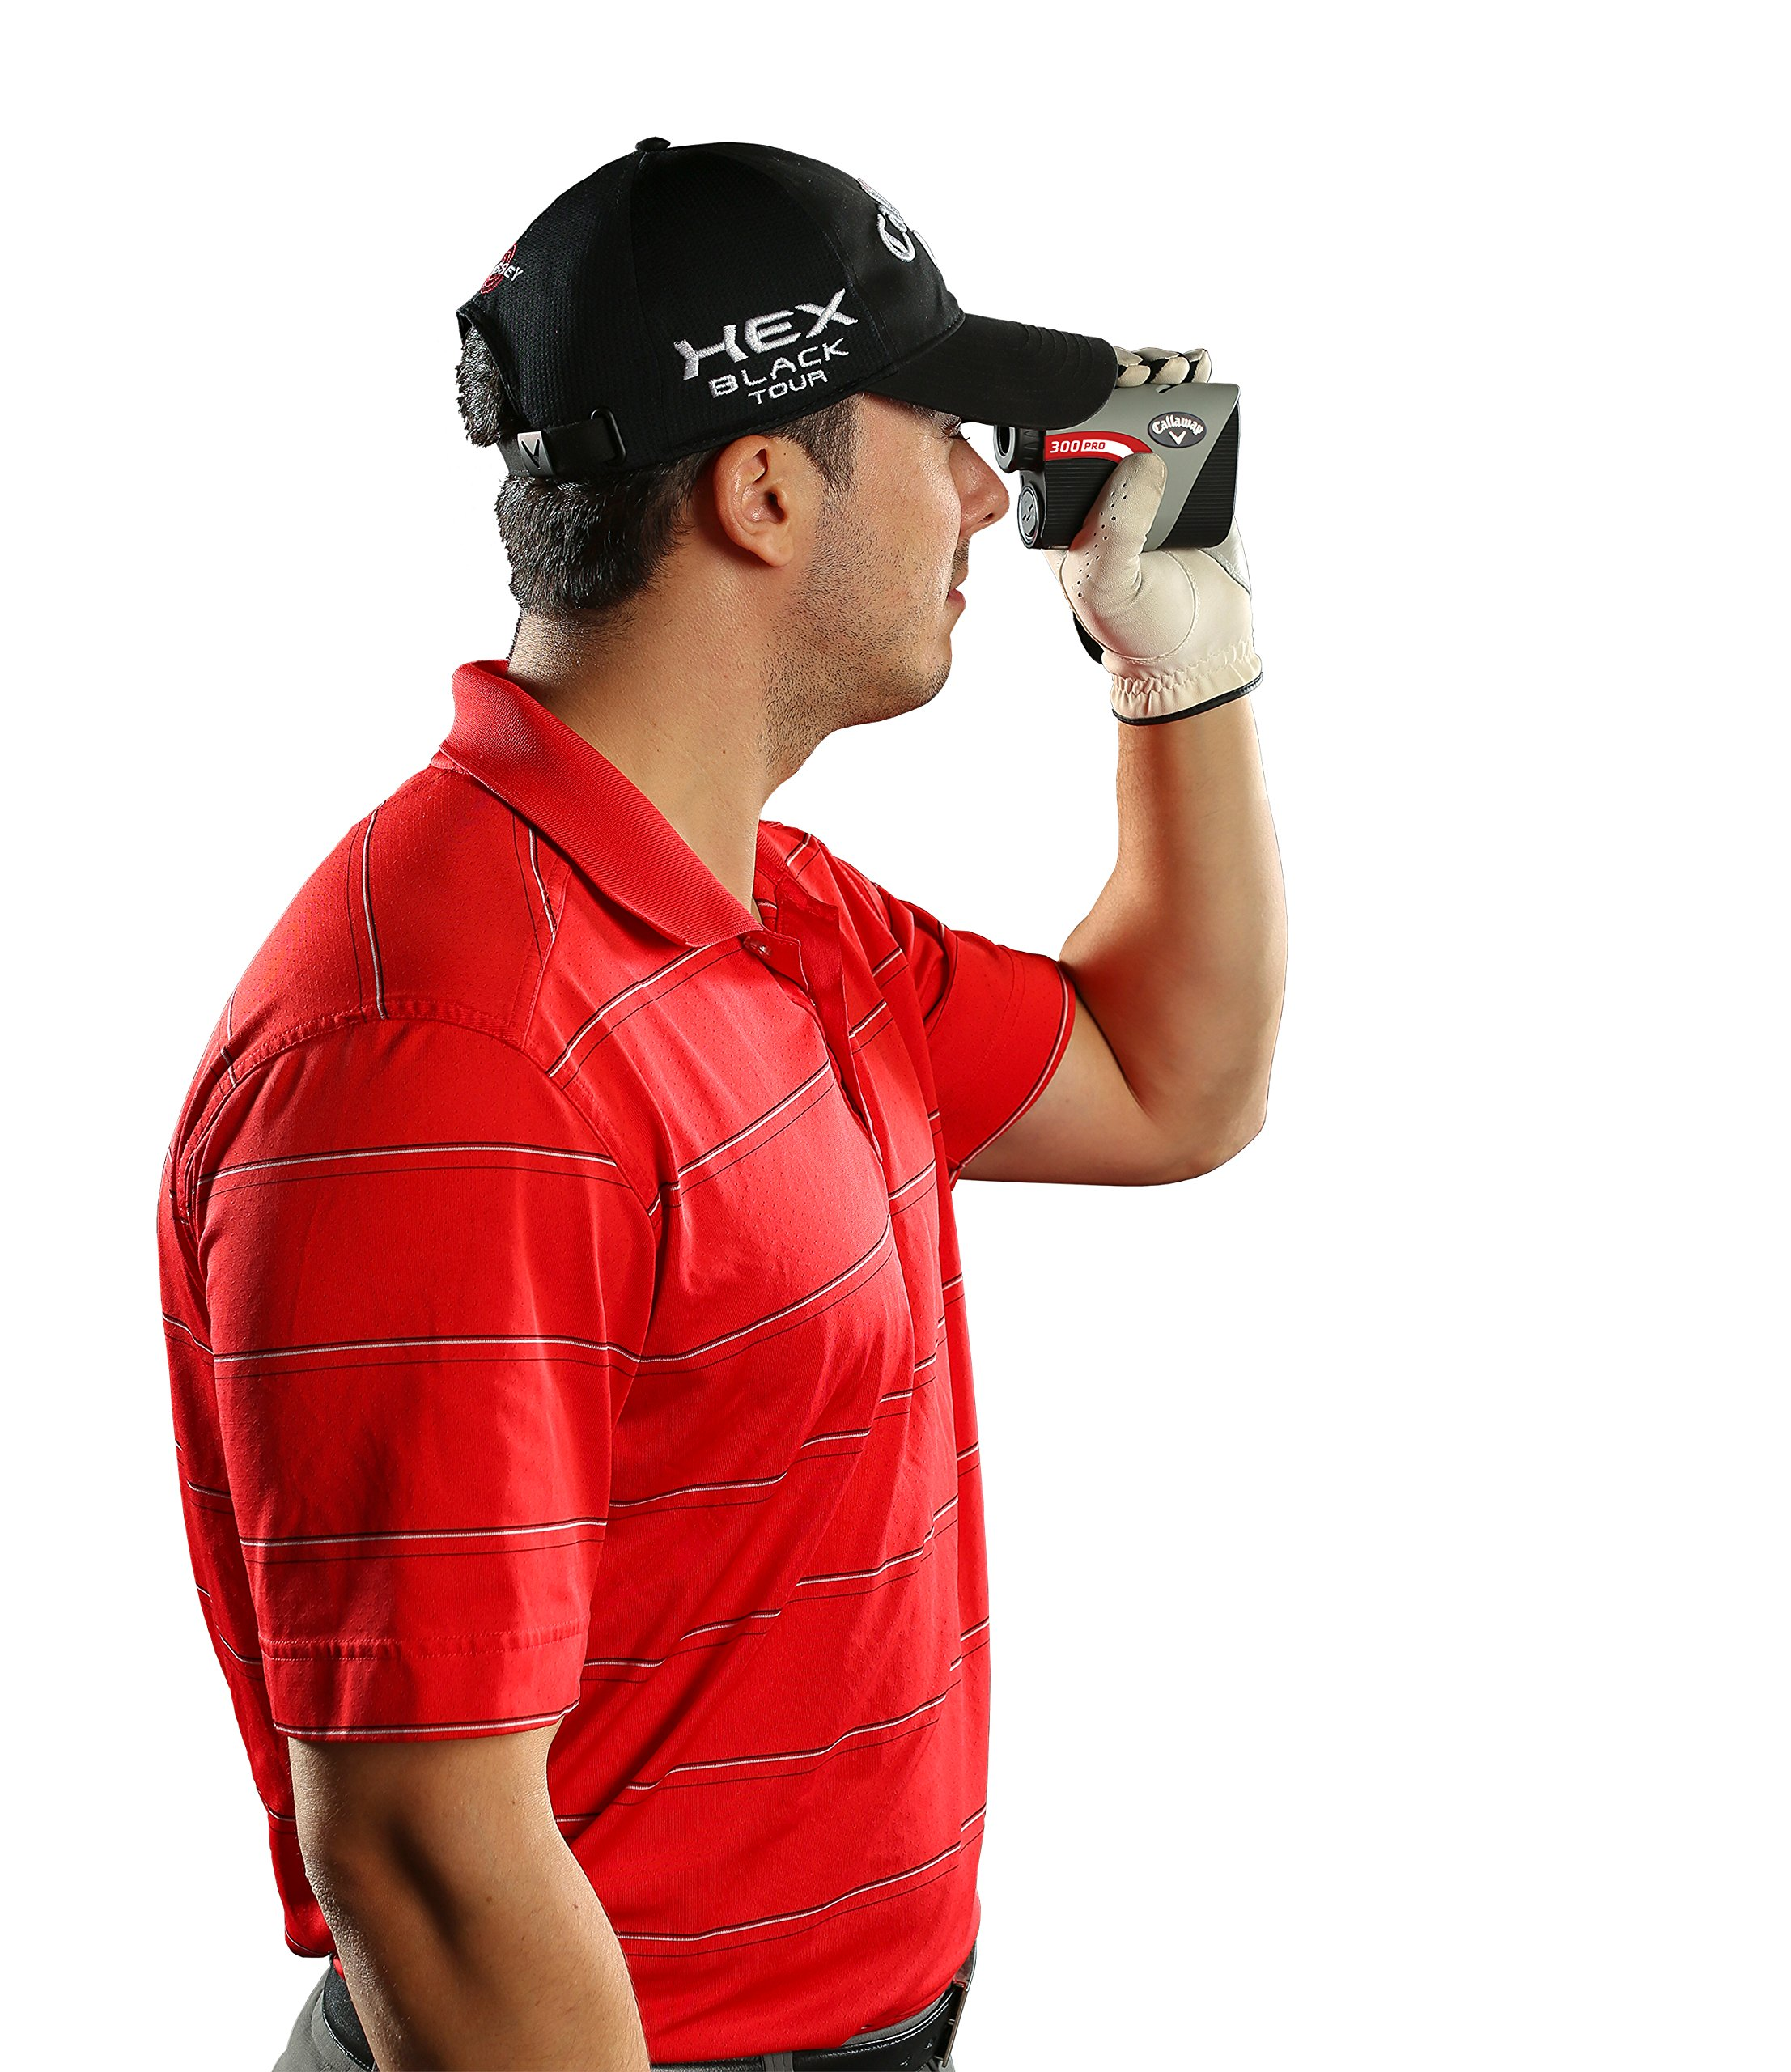 Callaway 300 Pro Golf Laser Rangefinder with Slope Measurement by Callaway (Image #2)